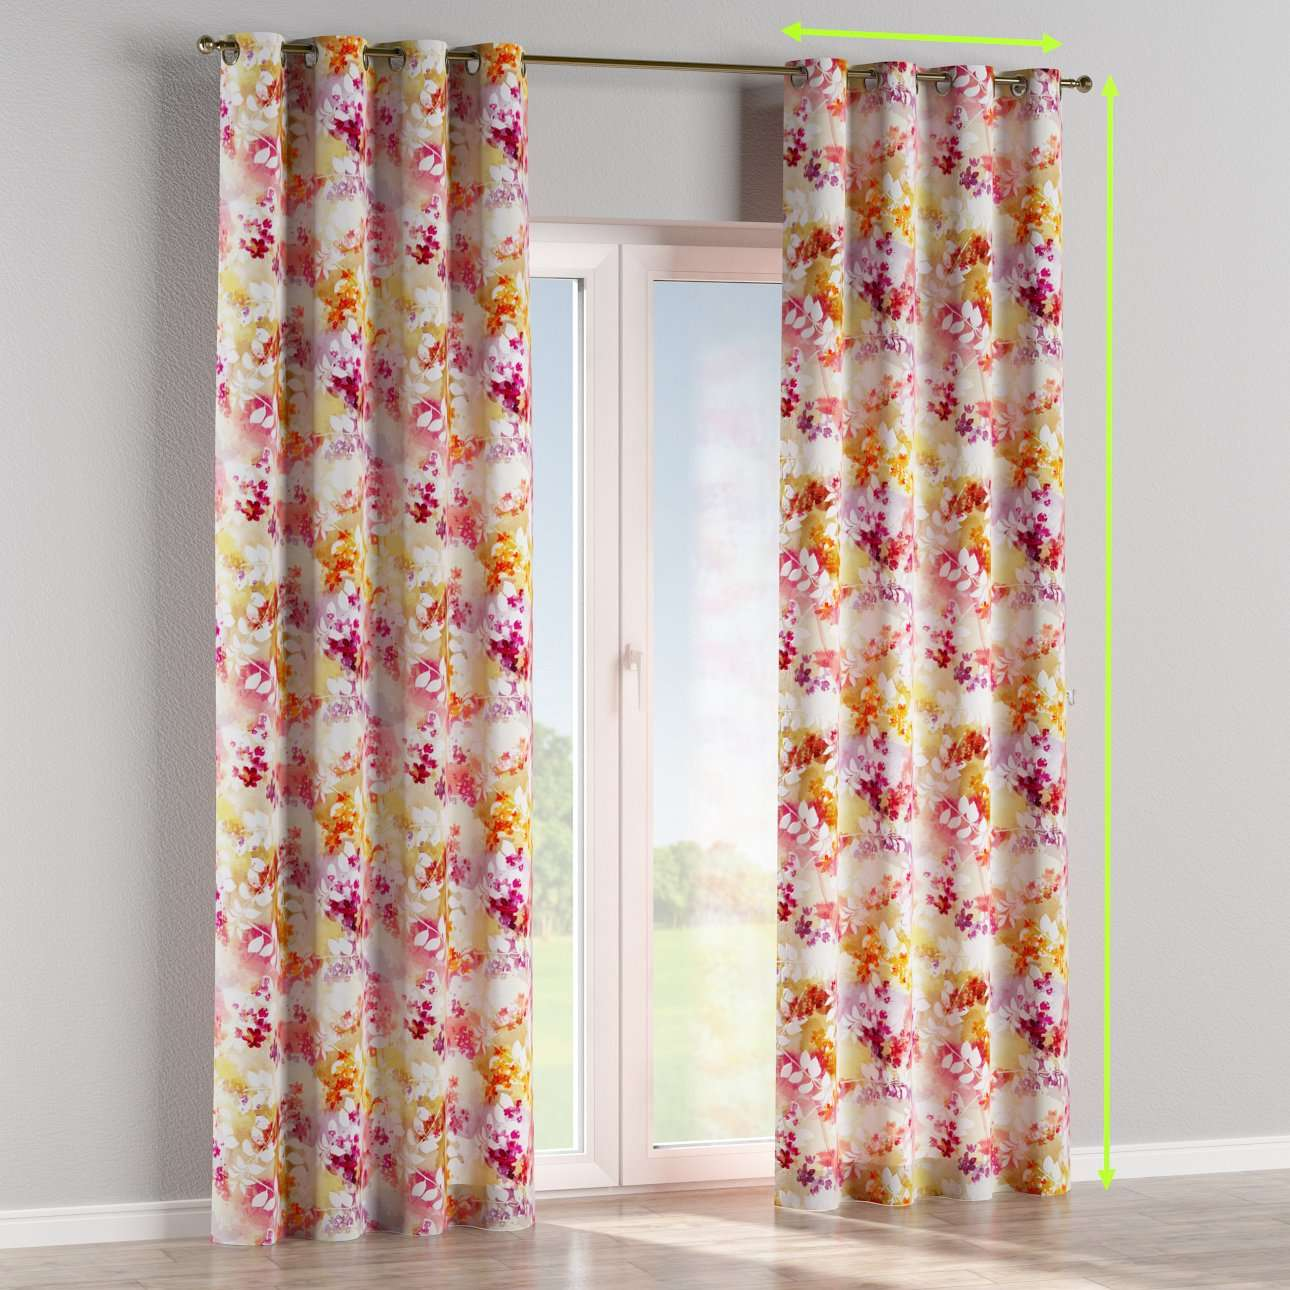 Eyelet lined curtains in collection Monet, fabric: 140-05